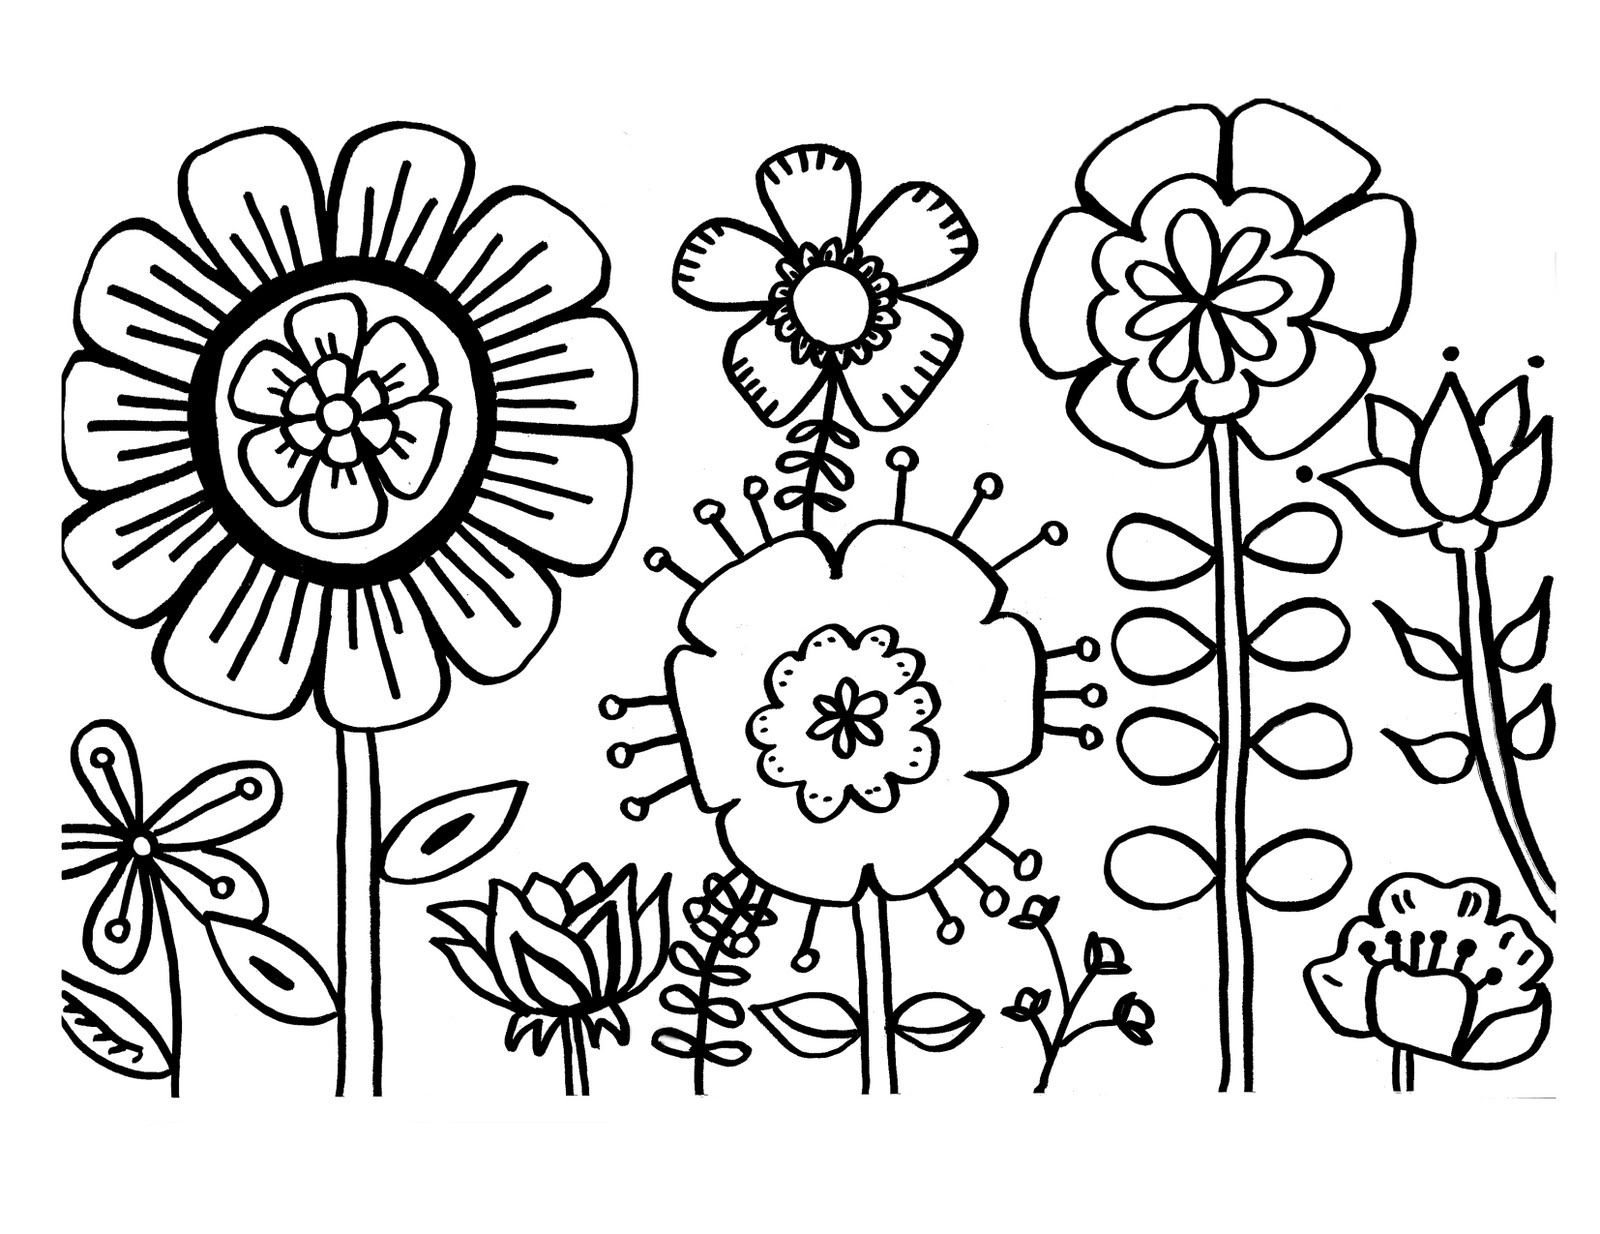 coloring pages flowers printable spring flowers coloring pages printable flowers pages printable coloring